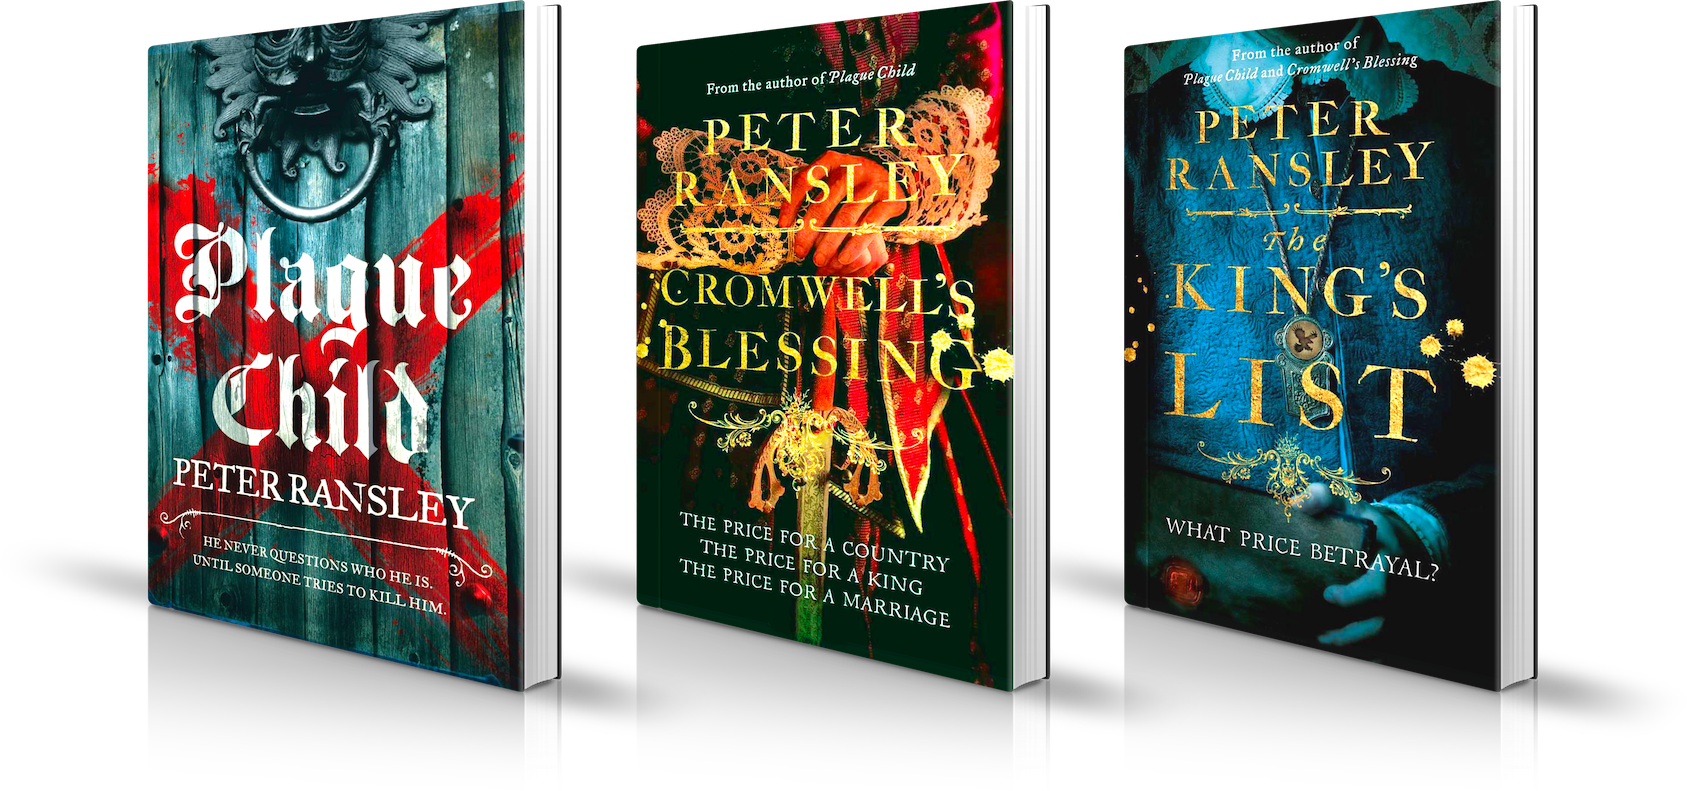 Plague Child, Cromwell's Blessing and Kings List by Peter Ransley